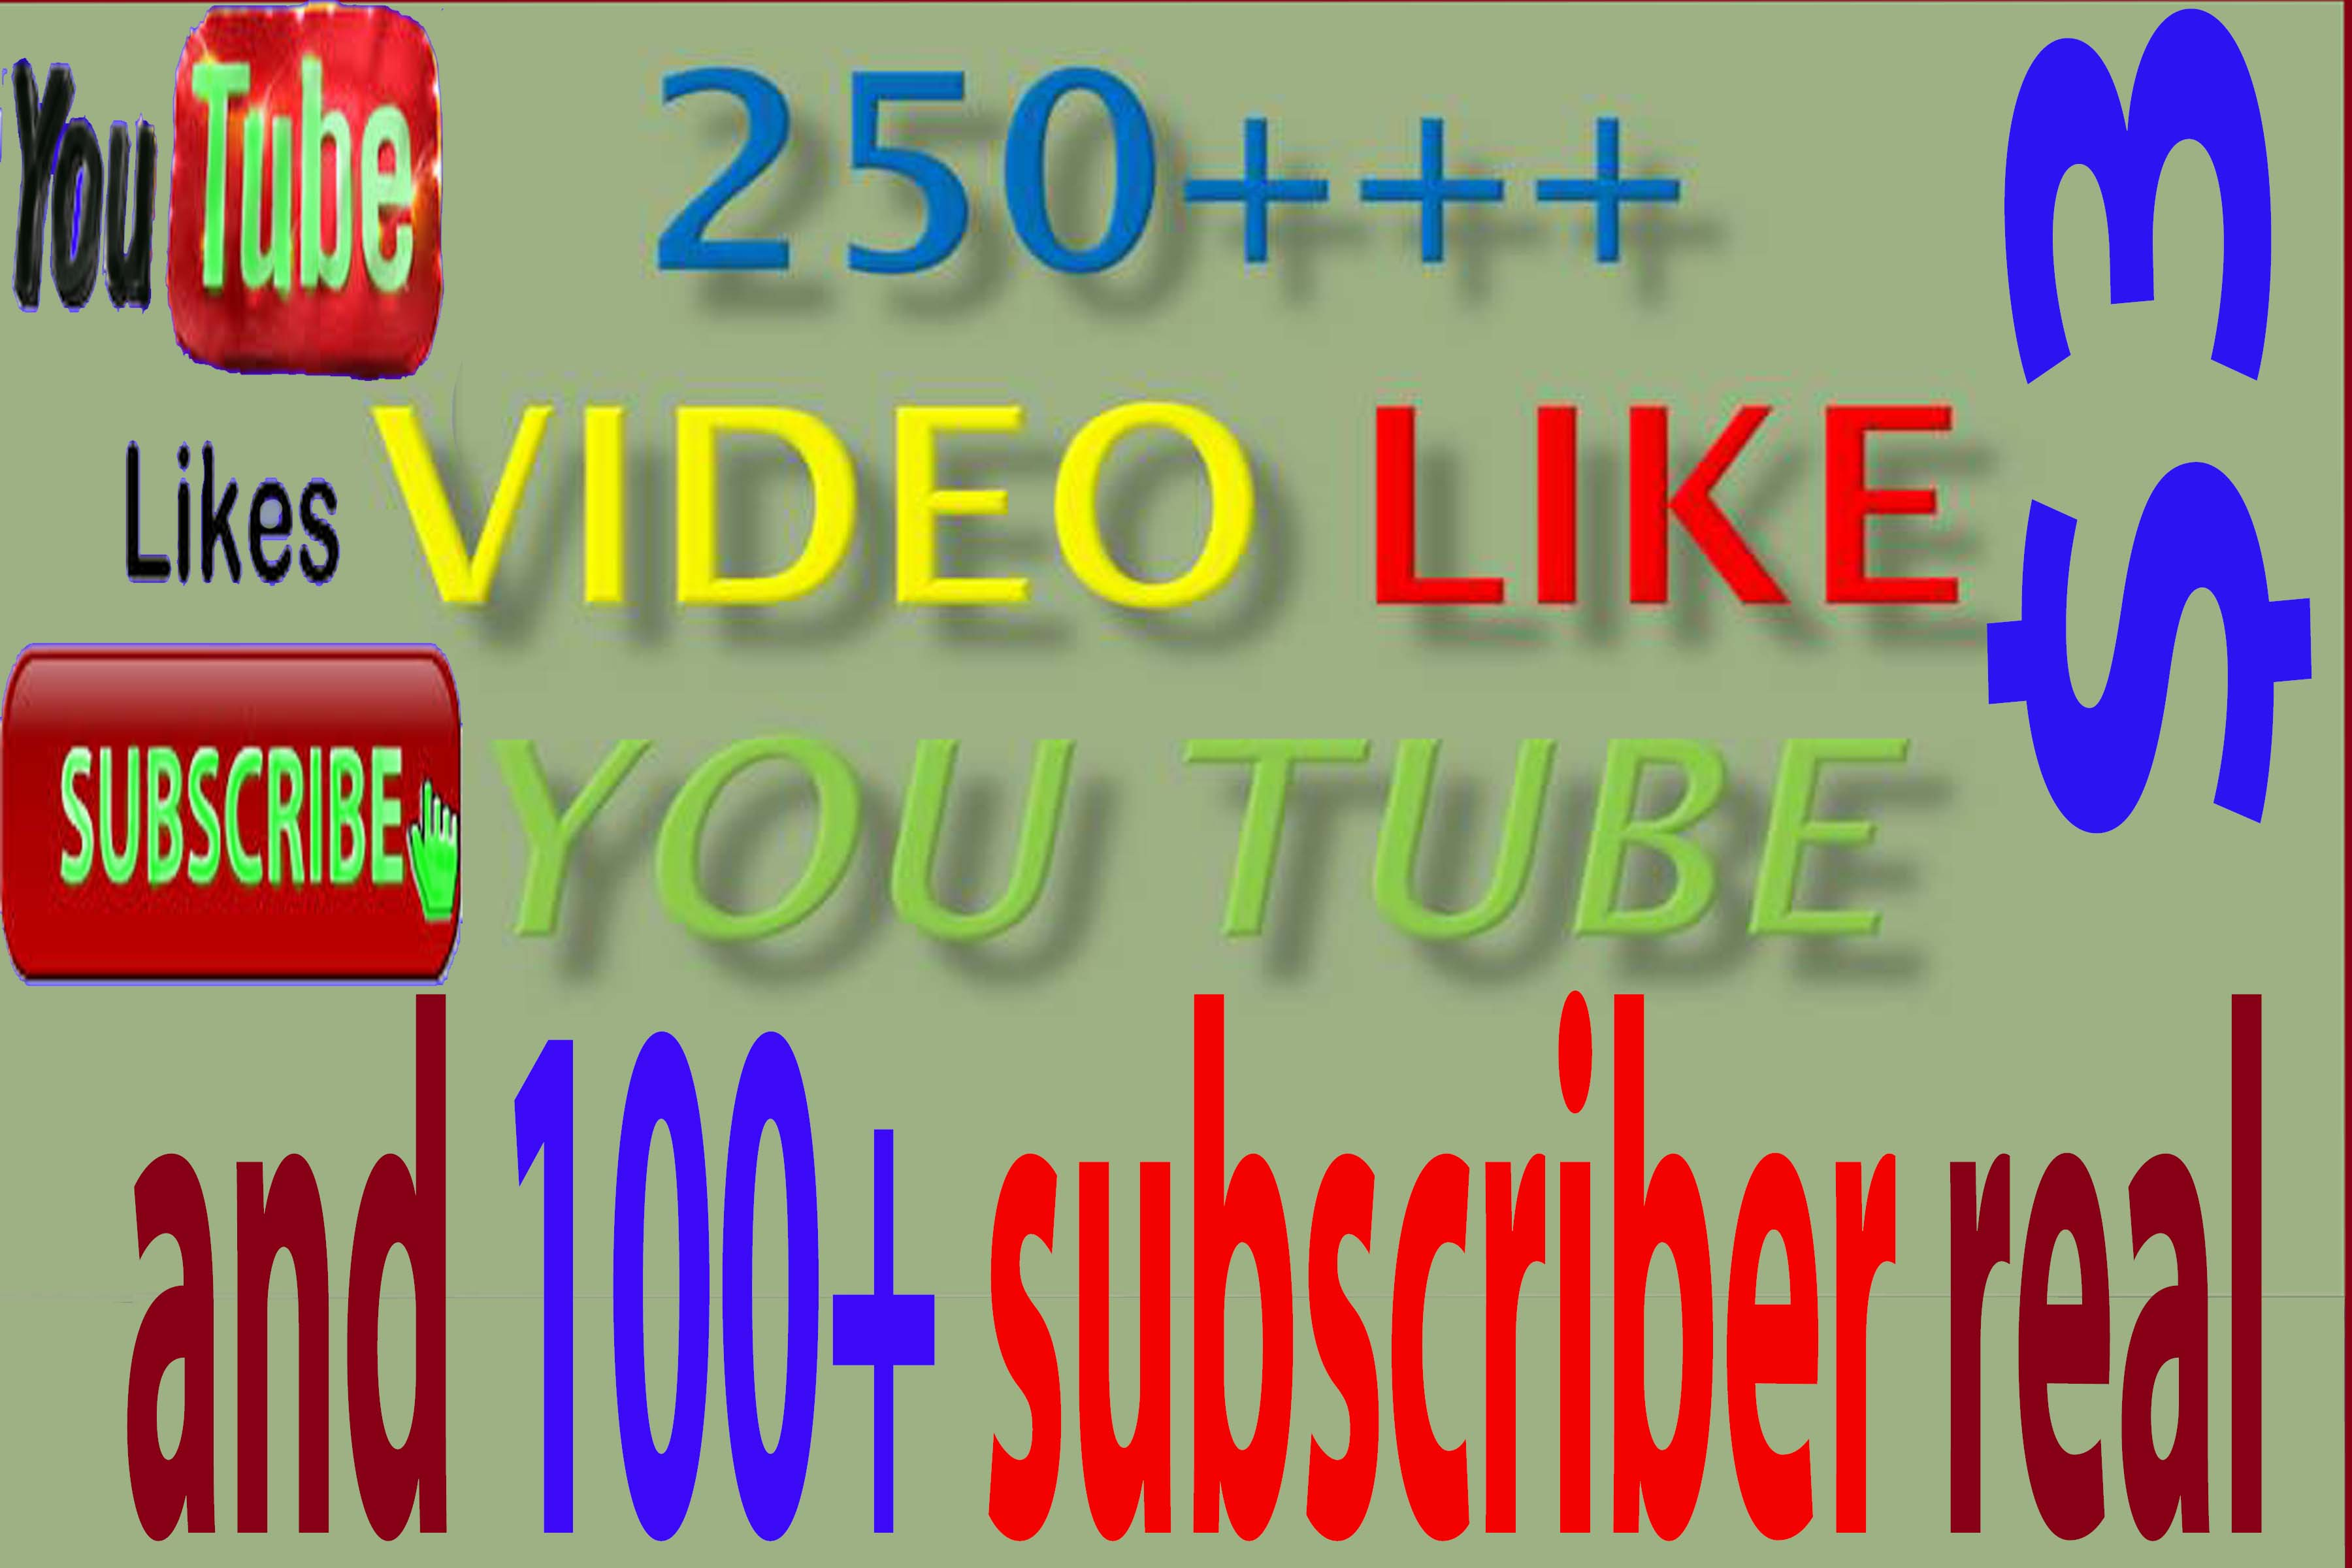 Bumper offer 700 + YouTube likes and Real 20+ you tube subscriber very farist only